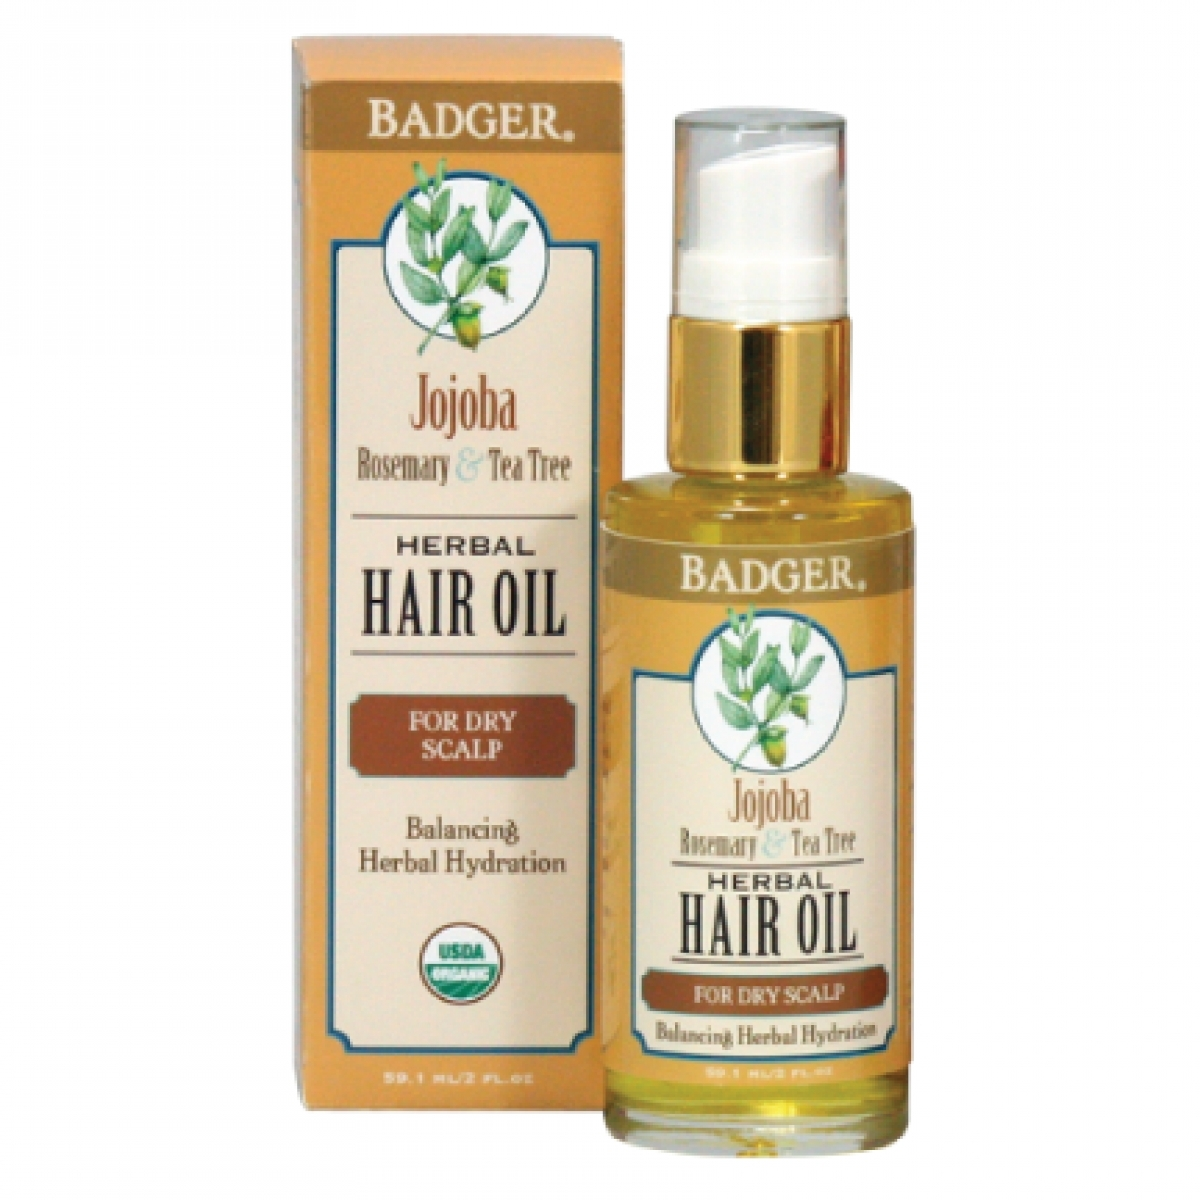 Badger Jojoba Herbal Hair Oil (2oz)